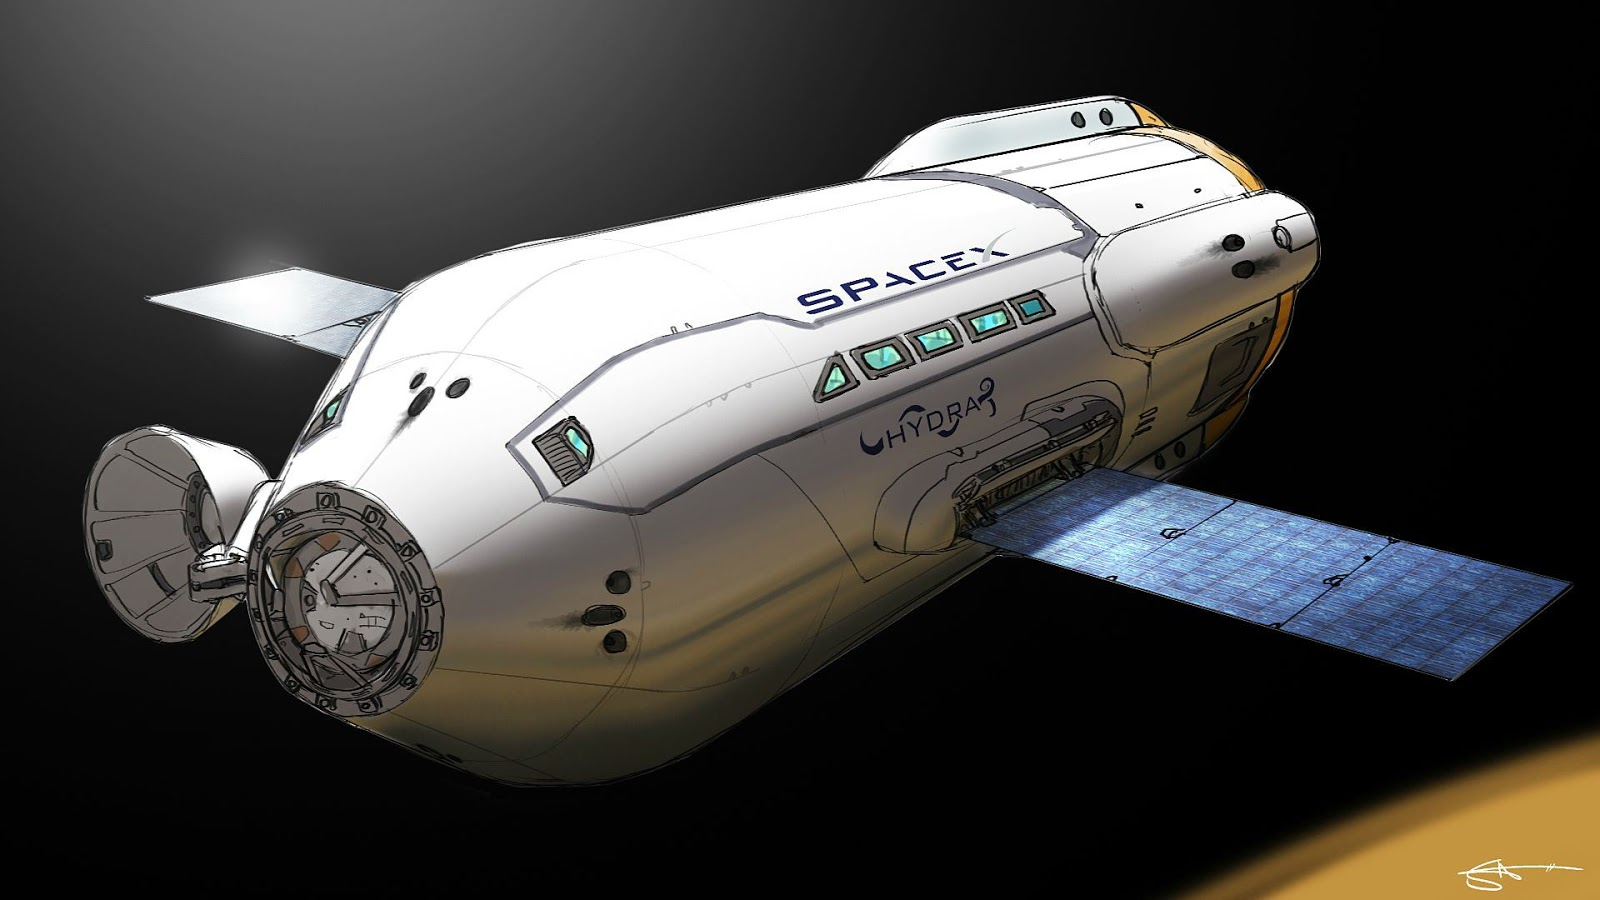 SpaceX Mars Colonial Transporter concept by Stanley Von Medvey